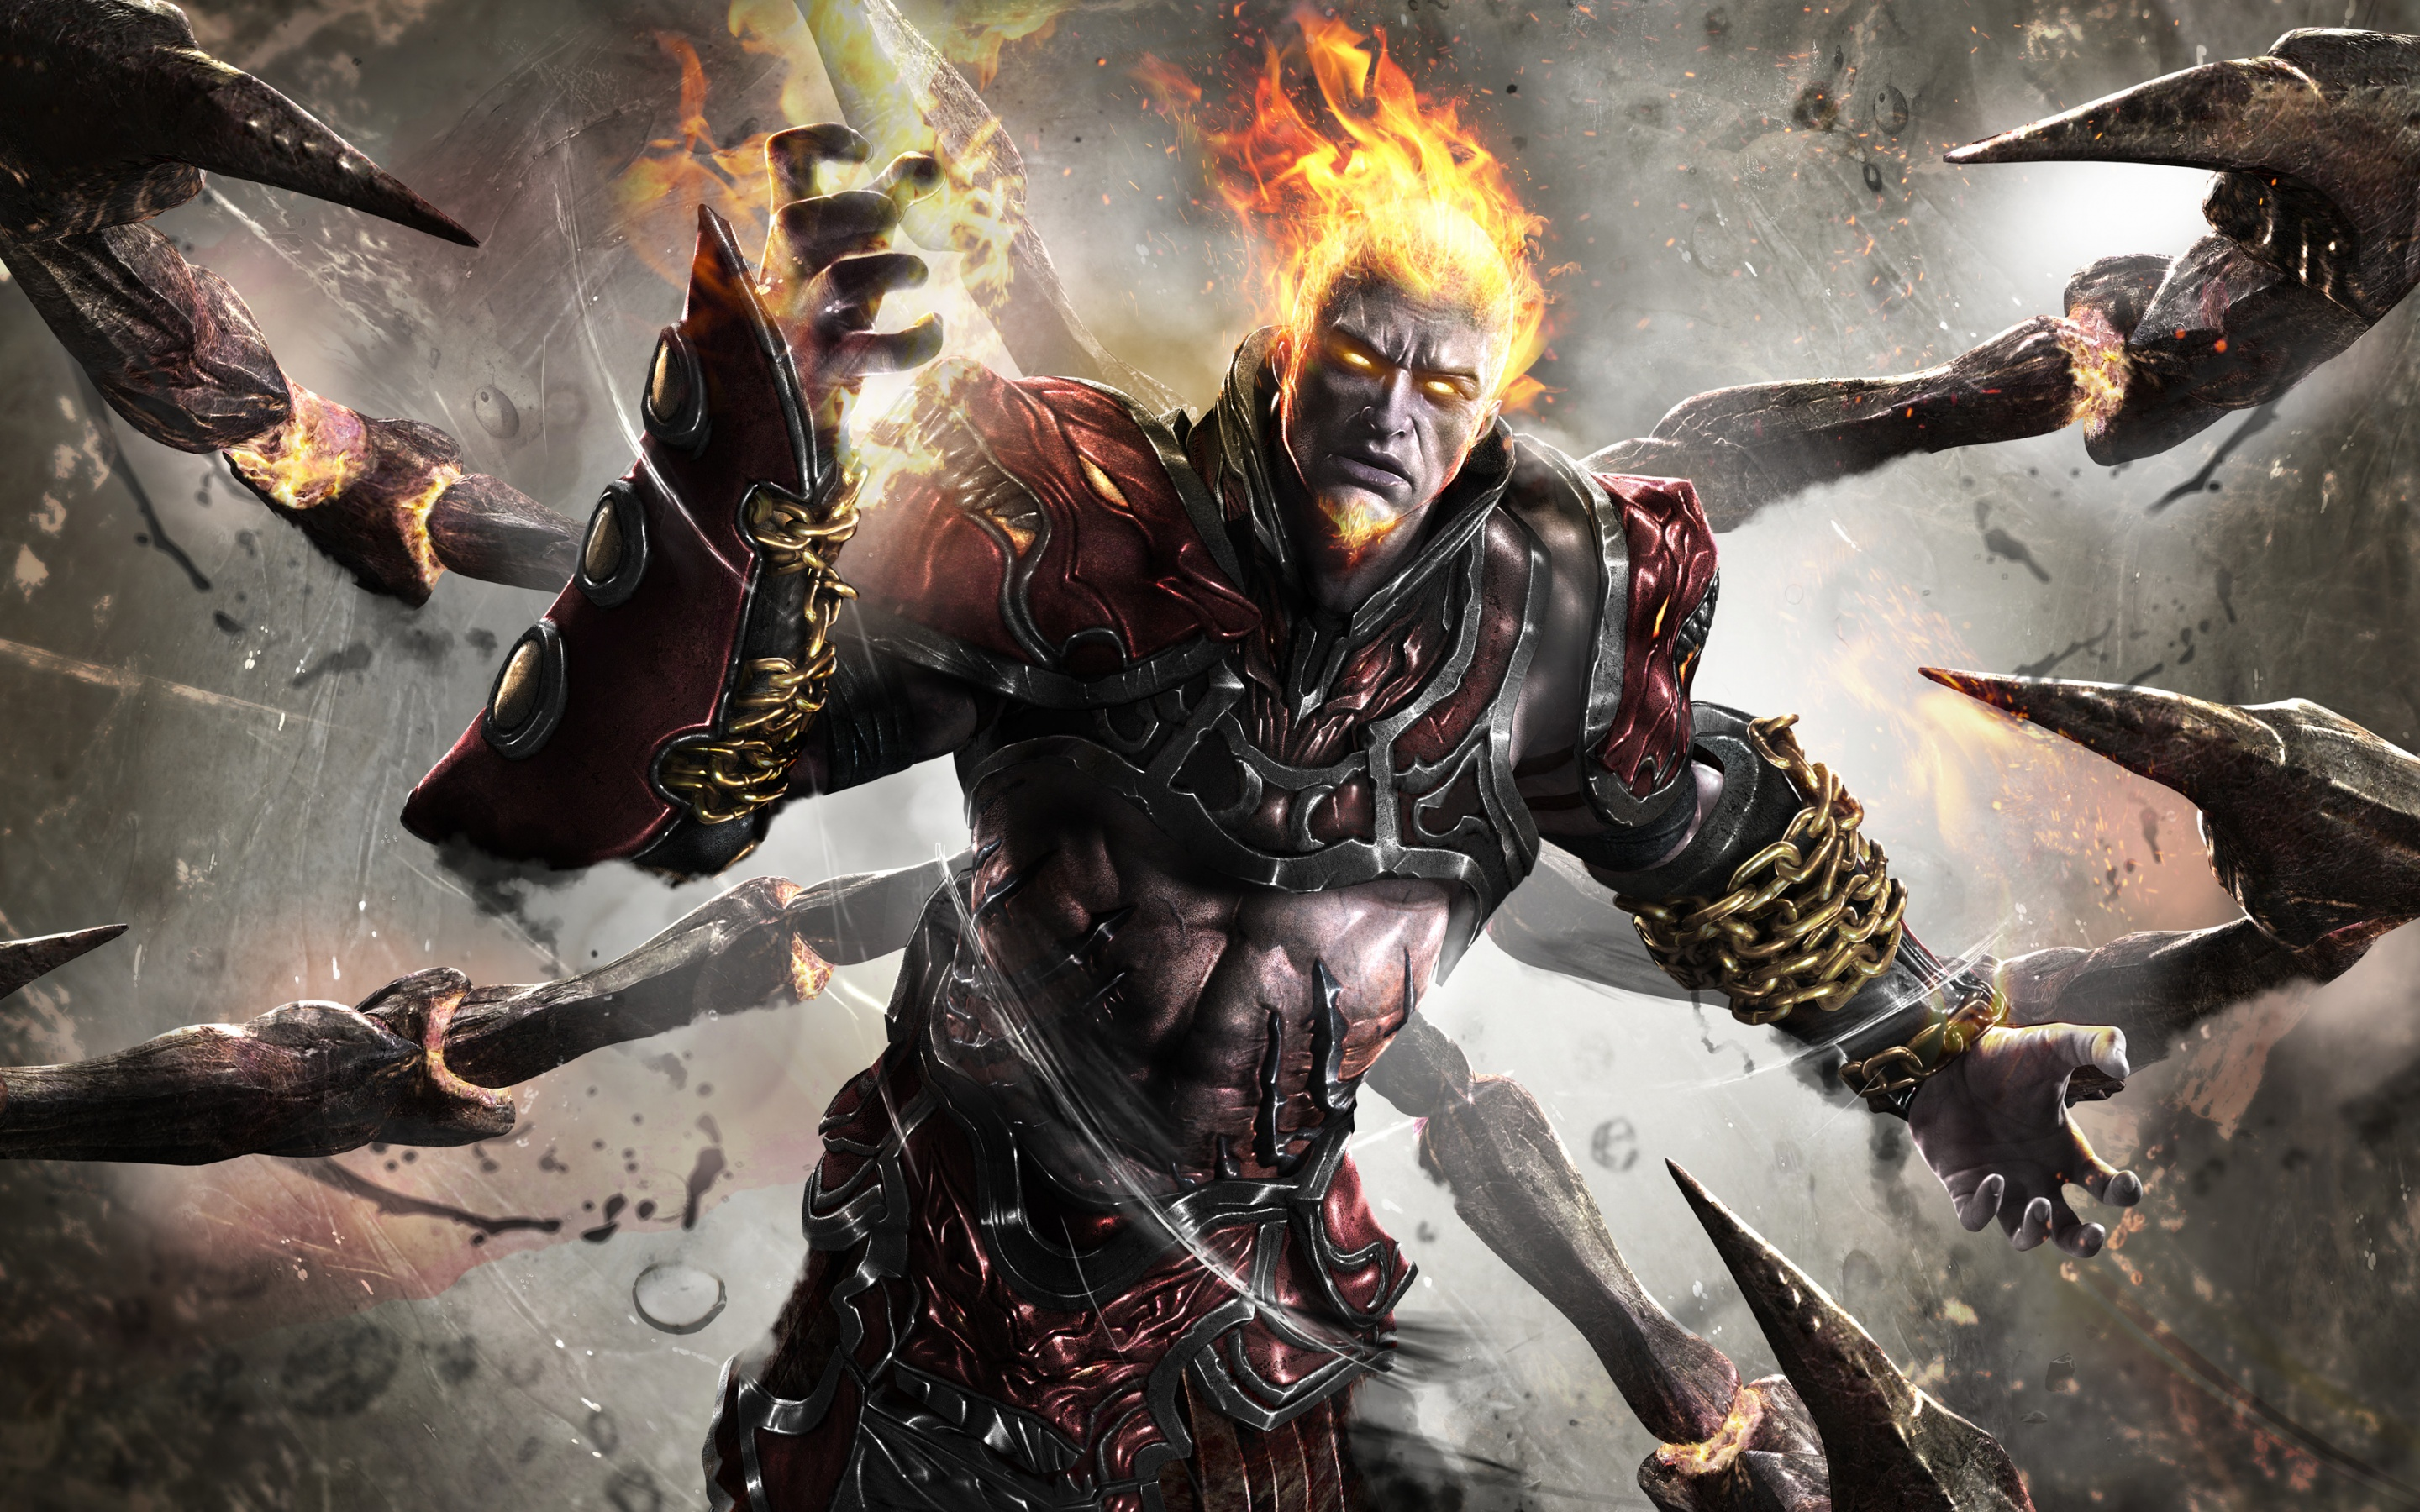 God of war ascension ares wallpapers in jpg format for free download - Ares god of war wallpaper ...